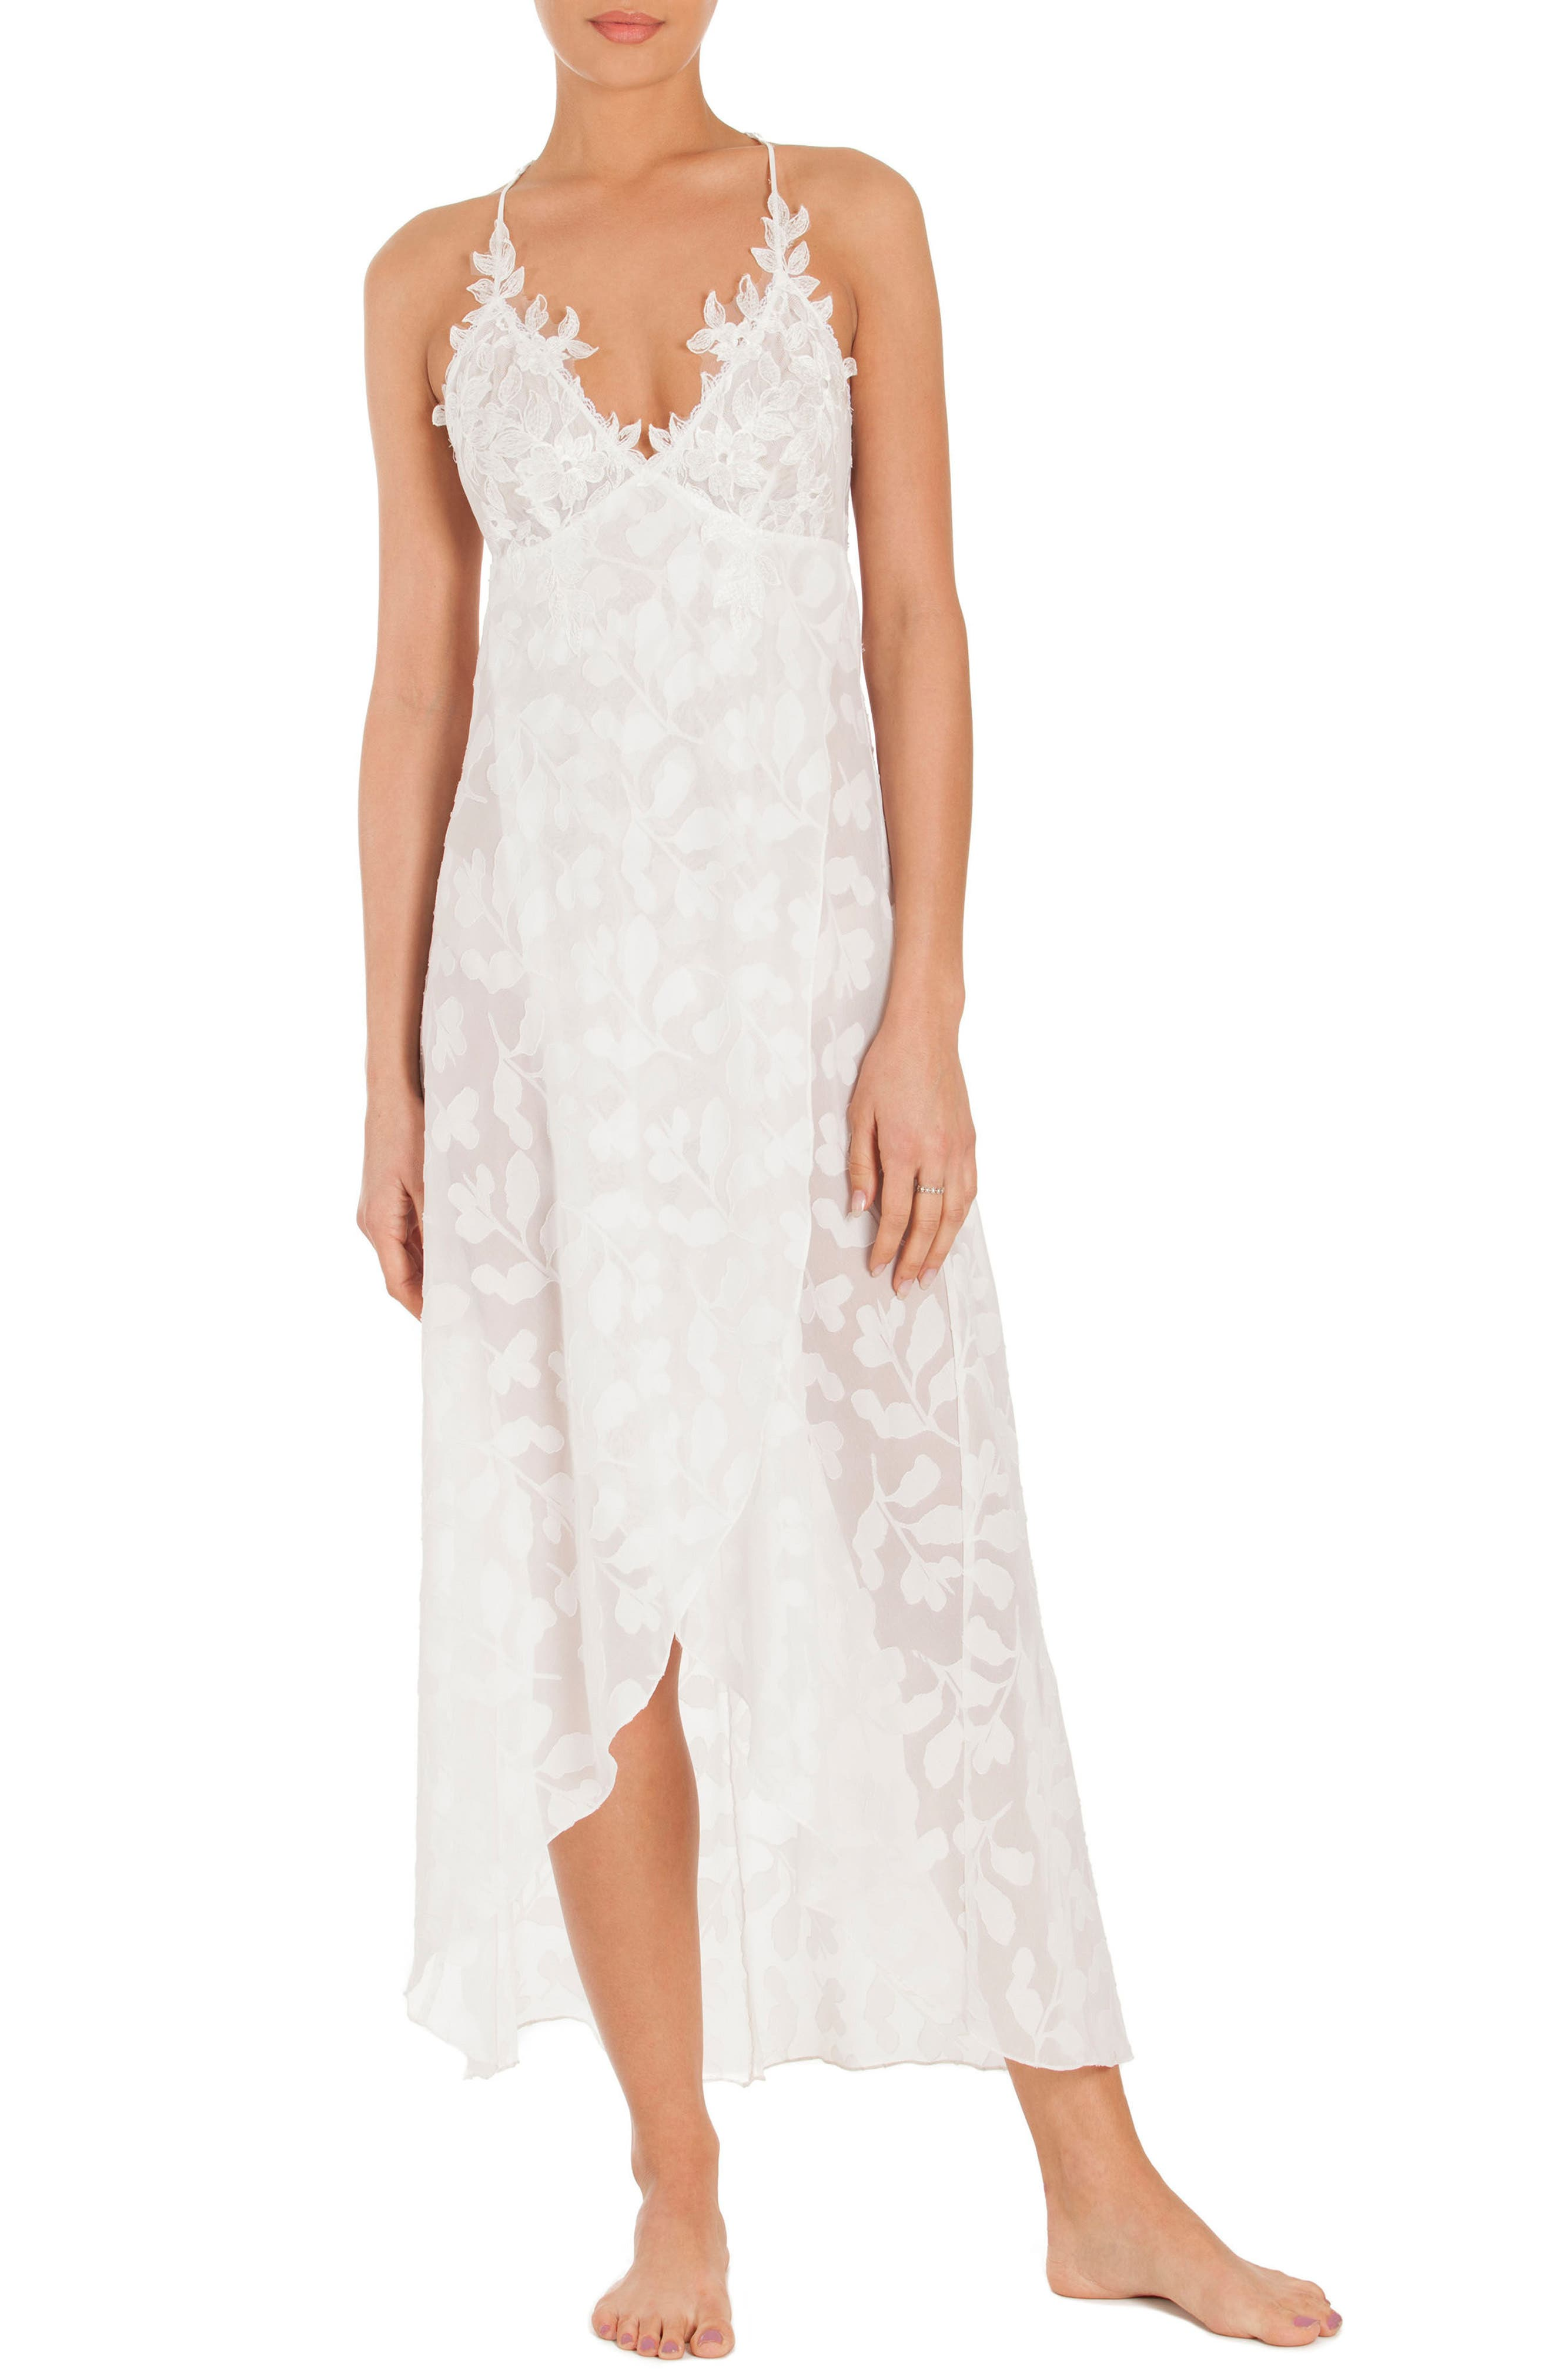 Jonquil Nightgown